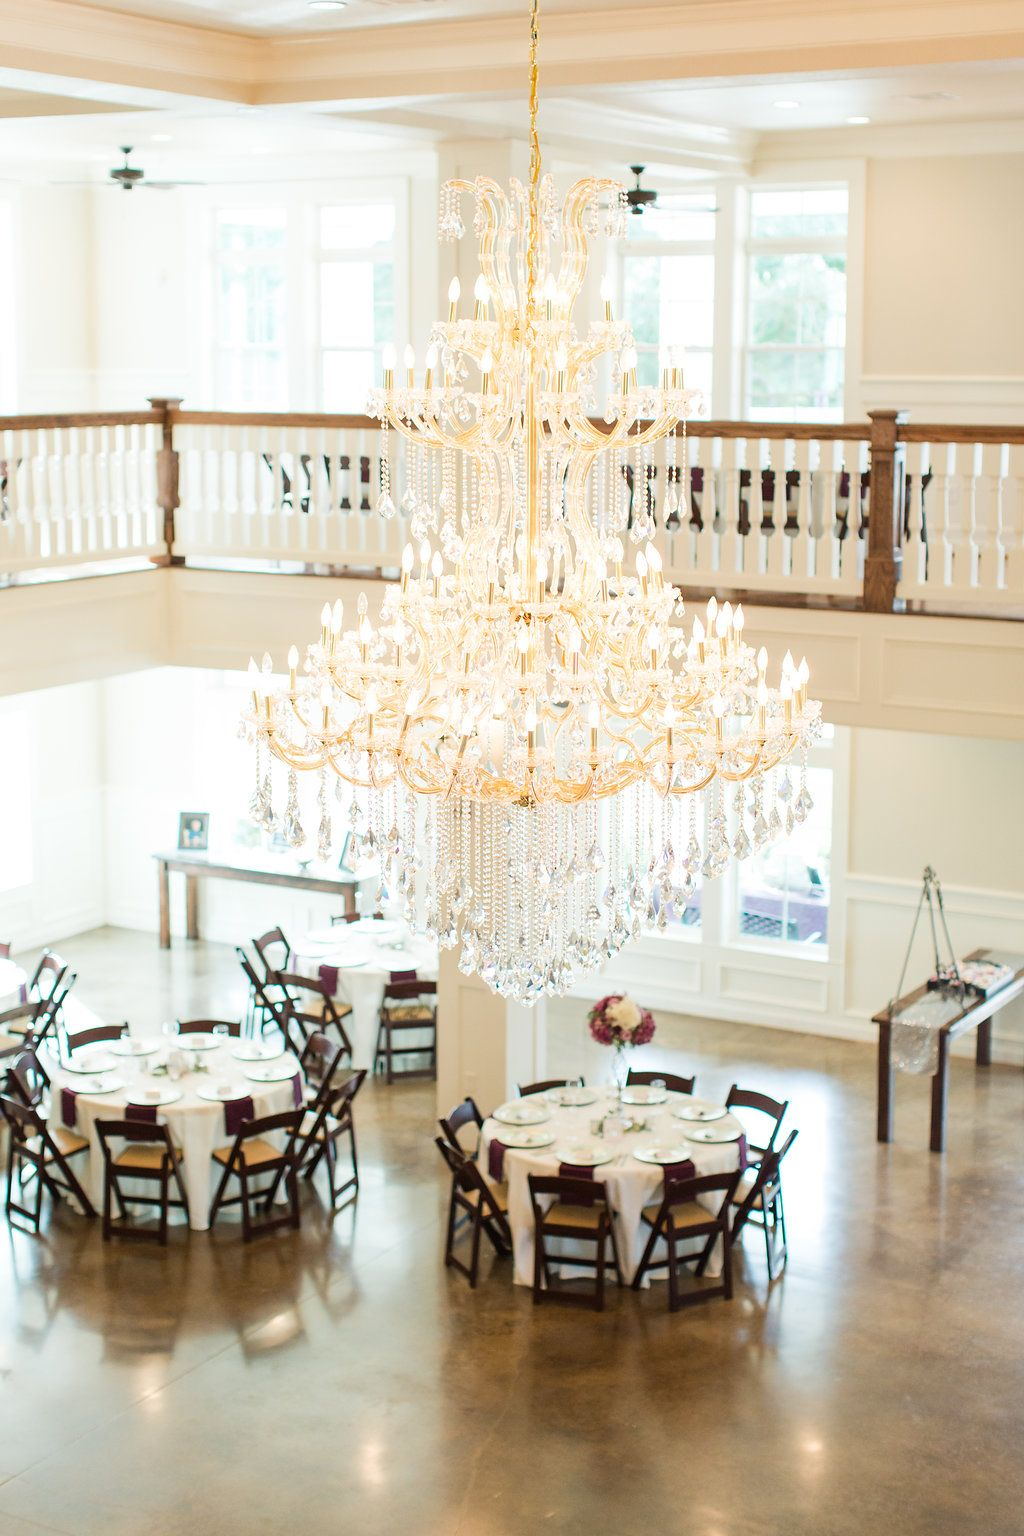 Houston wedding venue places to get married in houston